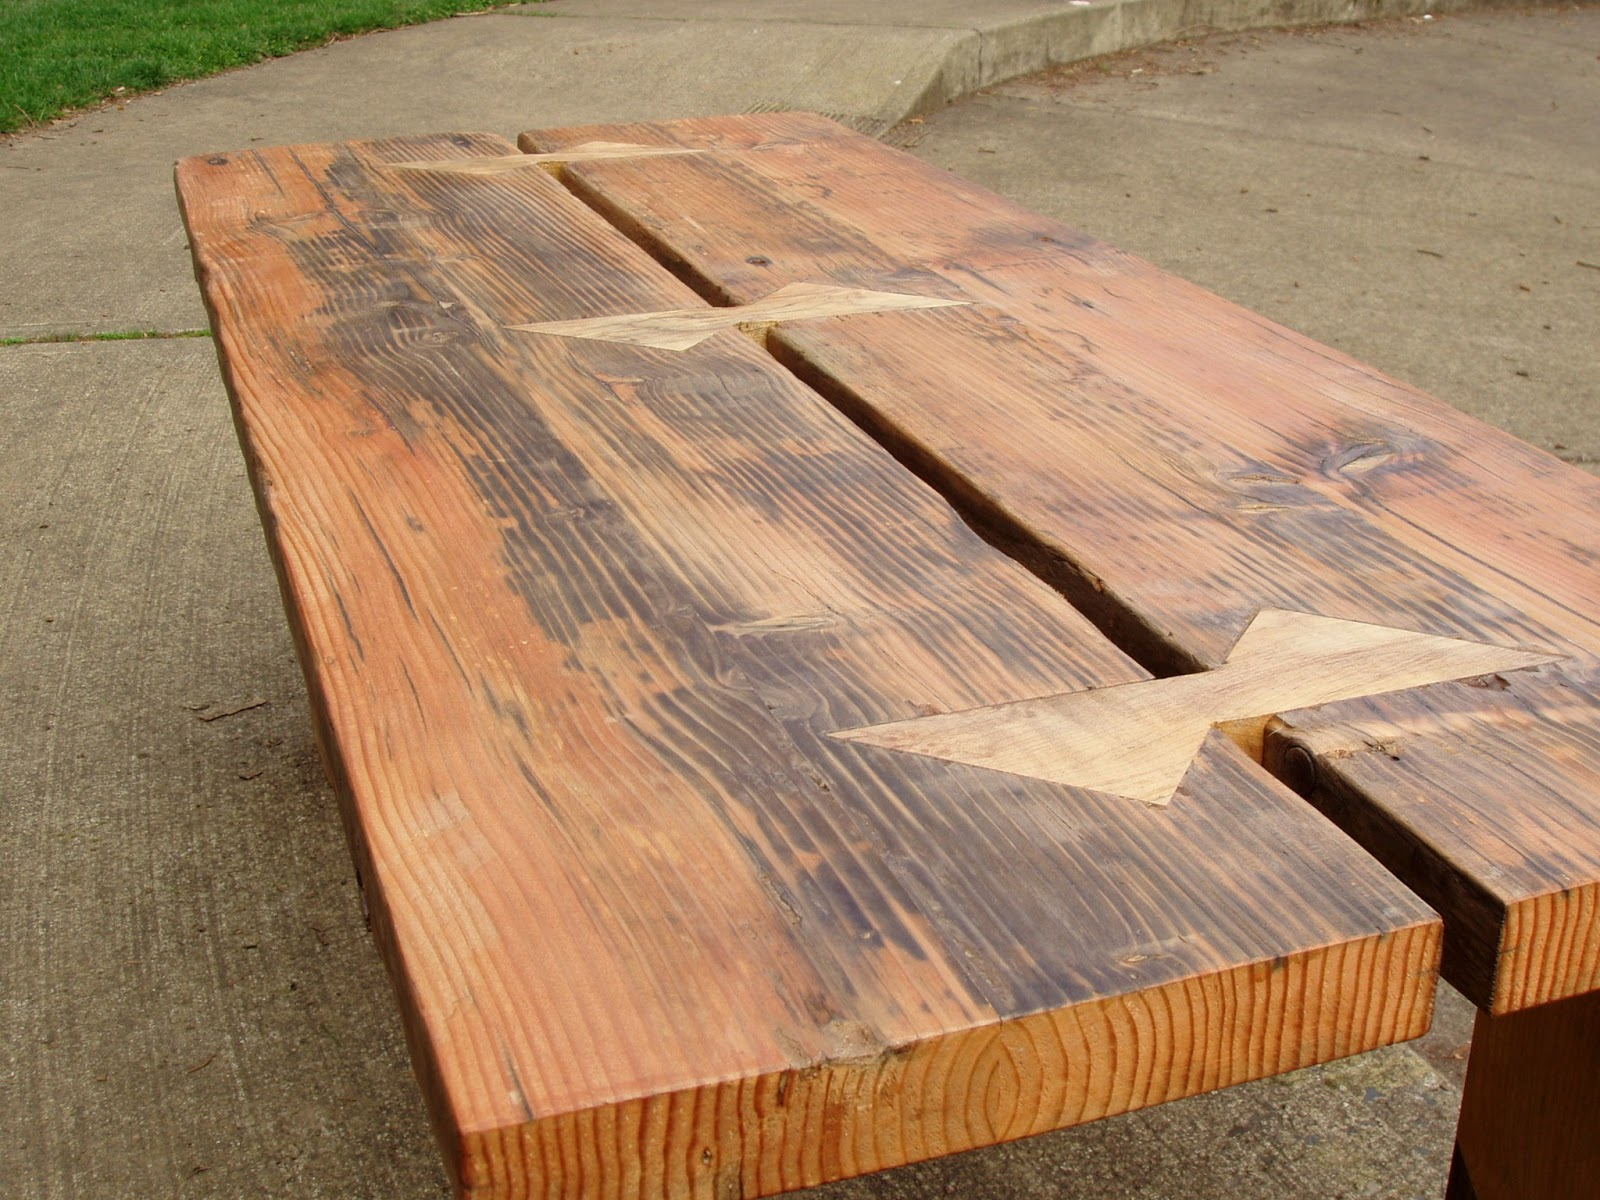 Pnw reclaimed wood furniture